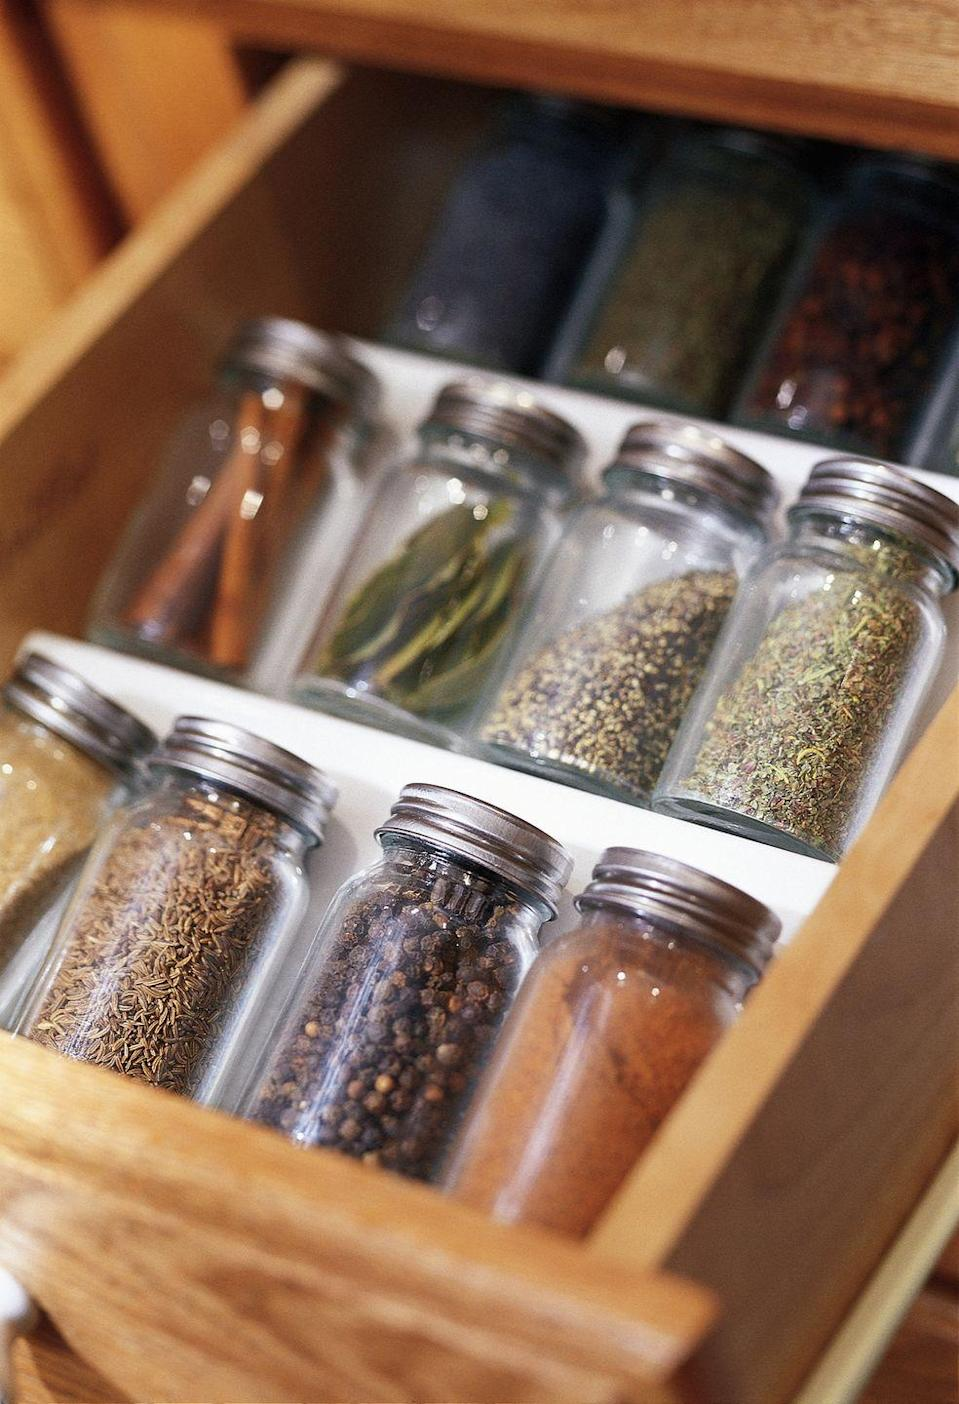 <p>Spices and fresh or dried herbs can be super pricey at the grocery store, but you do have options. You can purchase dried herbs and spices in bulk at a warehouse store for a cheaper price. </p><p>Instead of buying fresh herbs, you can plant them yourself (they're low-maintenance and easy to grow) so that you always have an abundance. If there's an ethnic market near you, you may be able to find spices for a much lower price as well. </p>